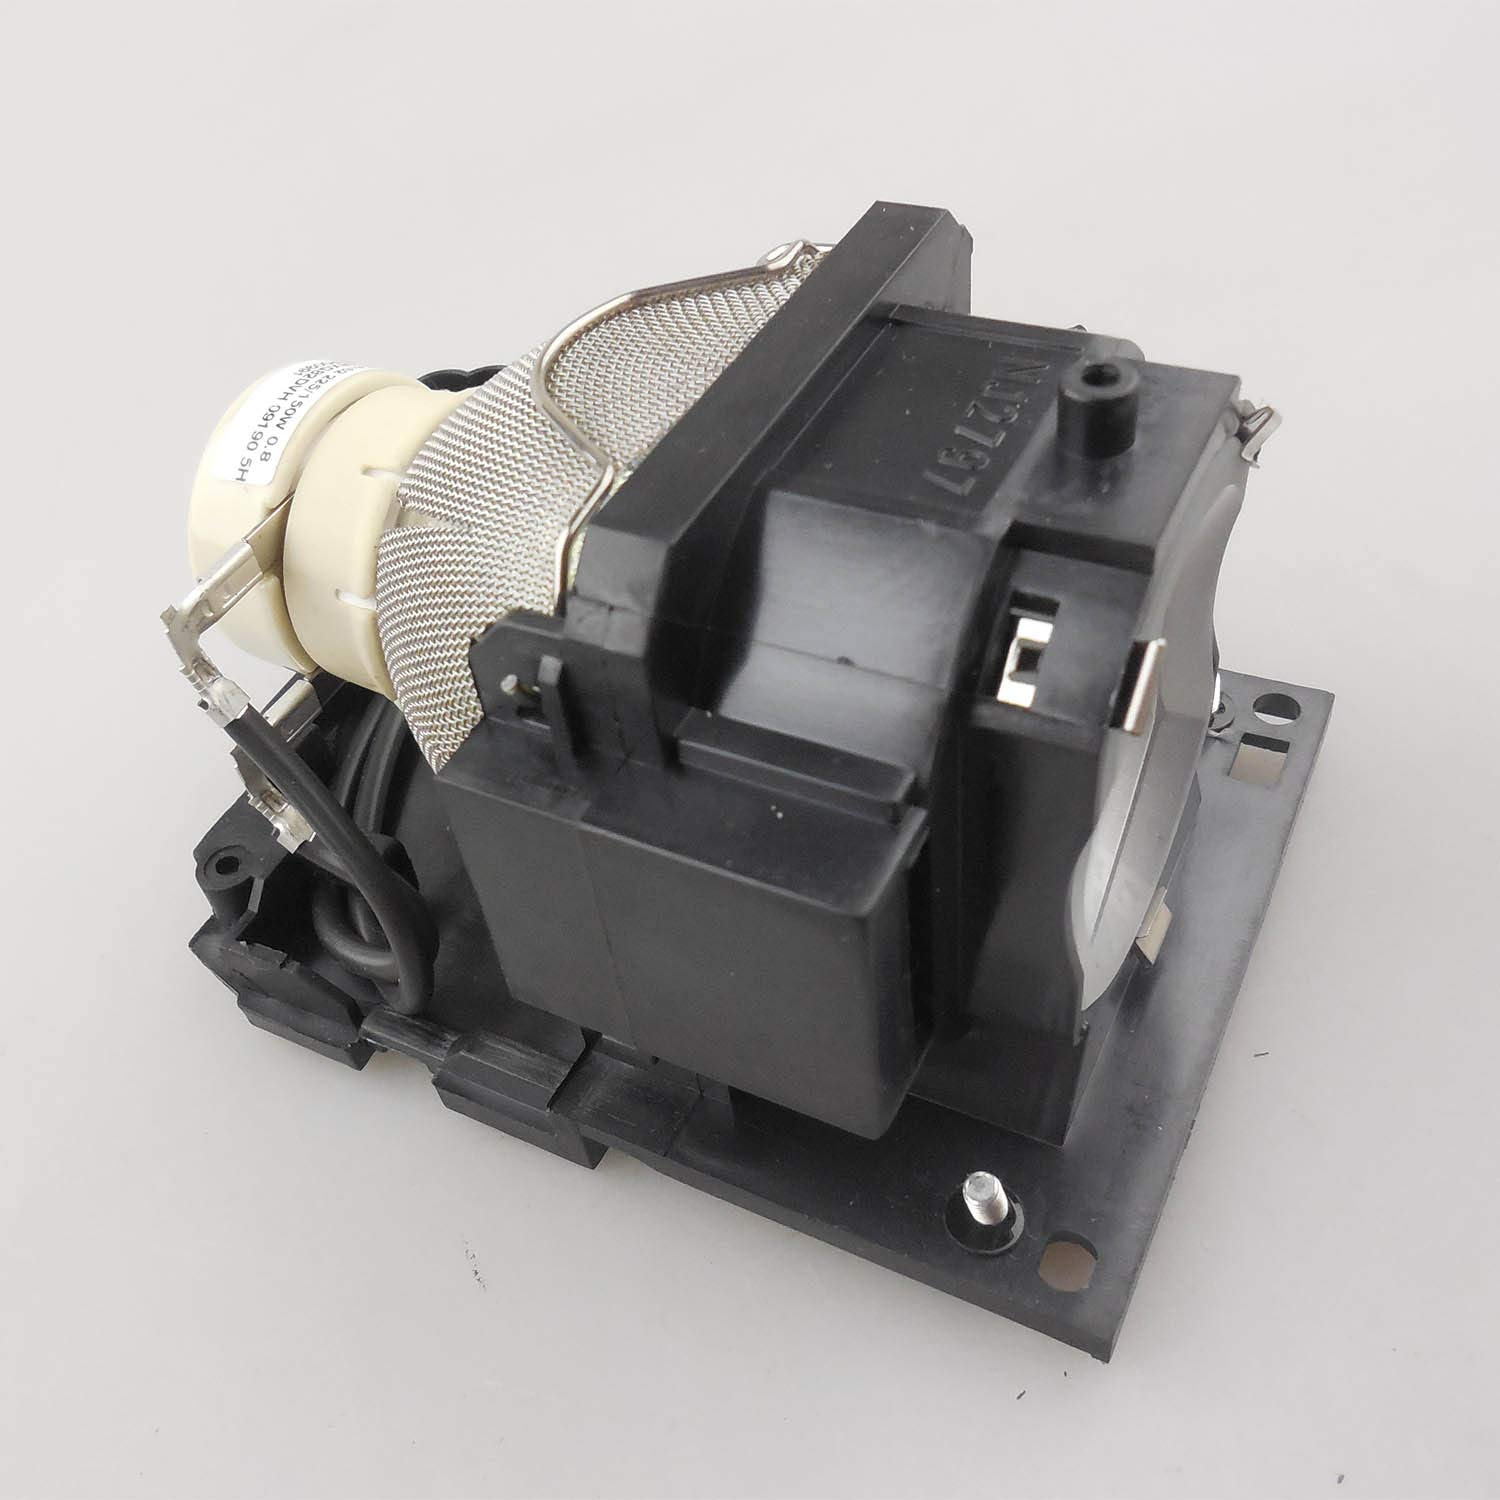 CTLAMP DT00751 Professional Replacement Projector Lamp with Housing DT00751 Compatible with HITACHI CP-X260 CP-X267 CP-X268A HX-3180 CP-X265